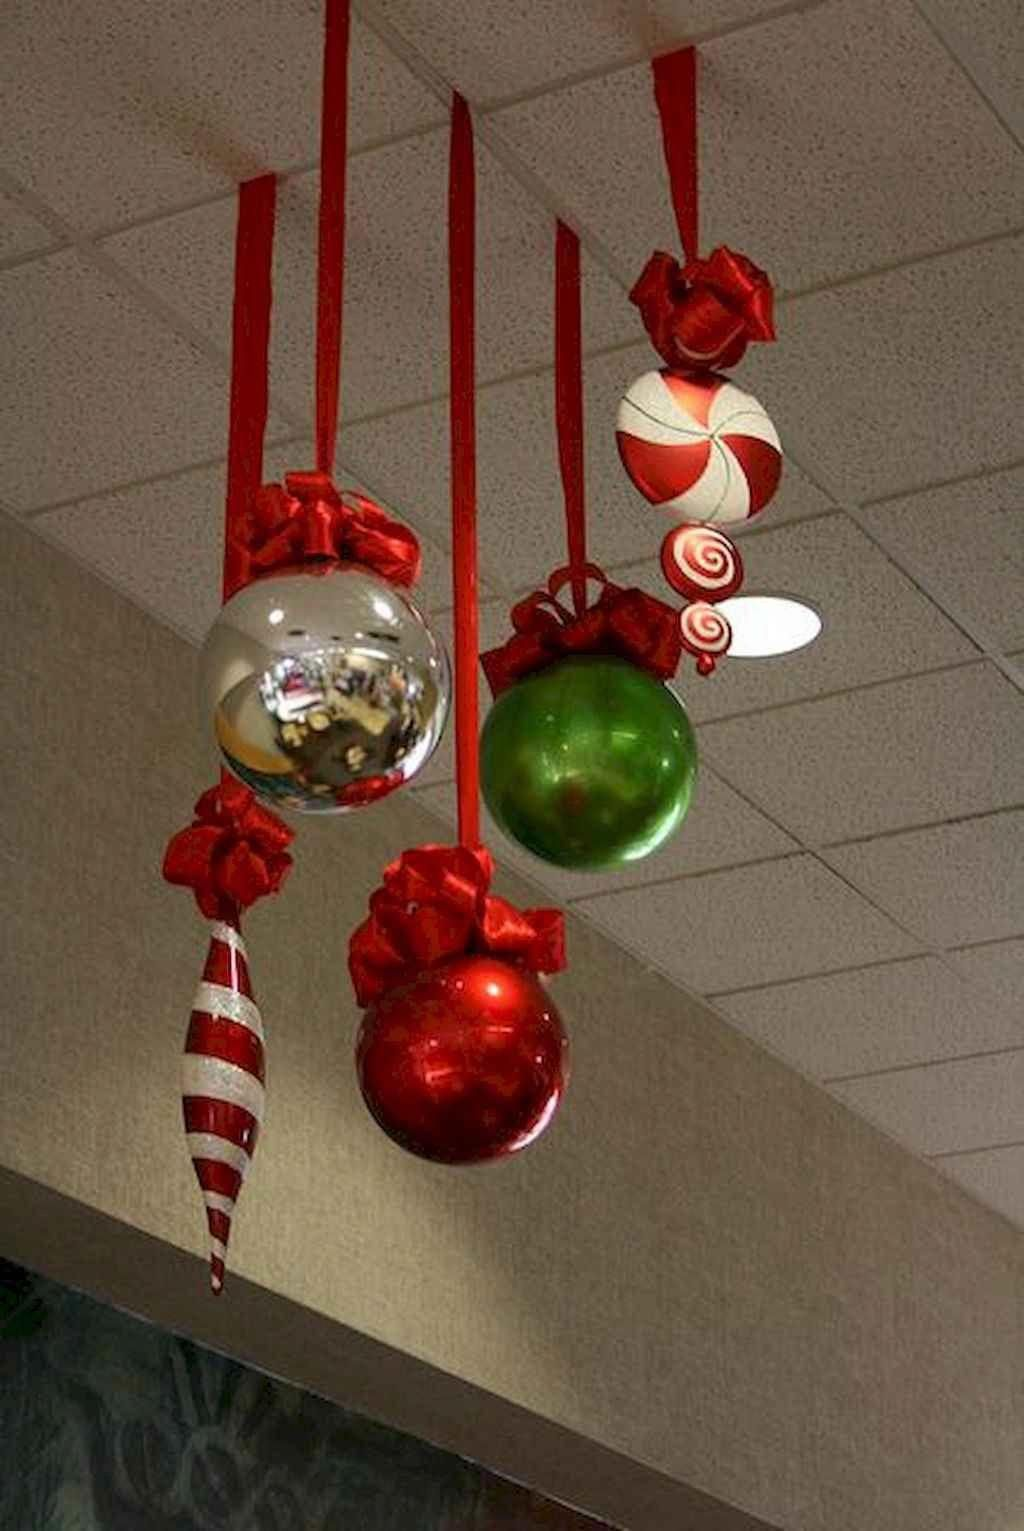 christmashome in 2020 Office christmas decorations